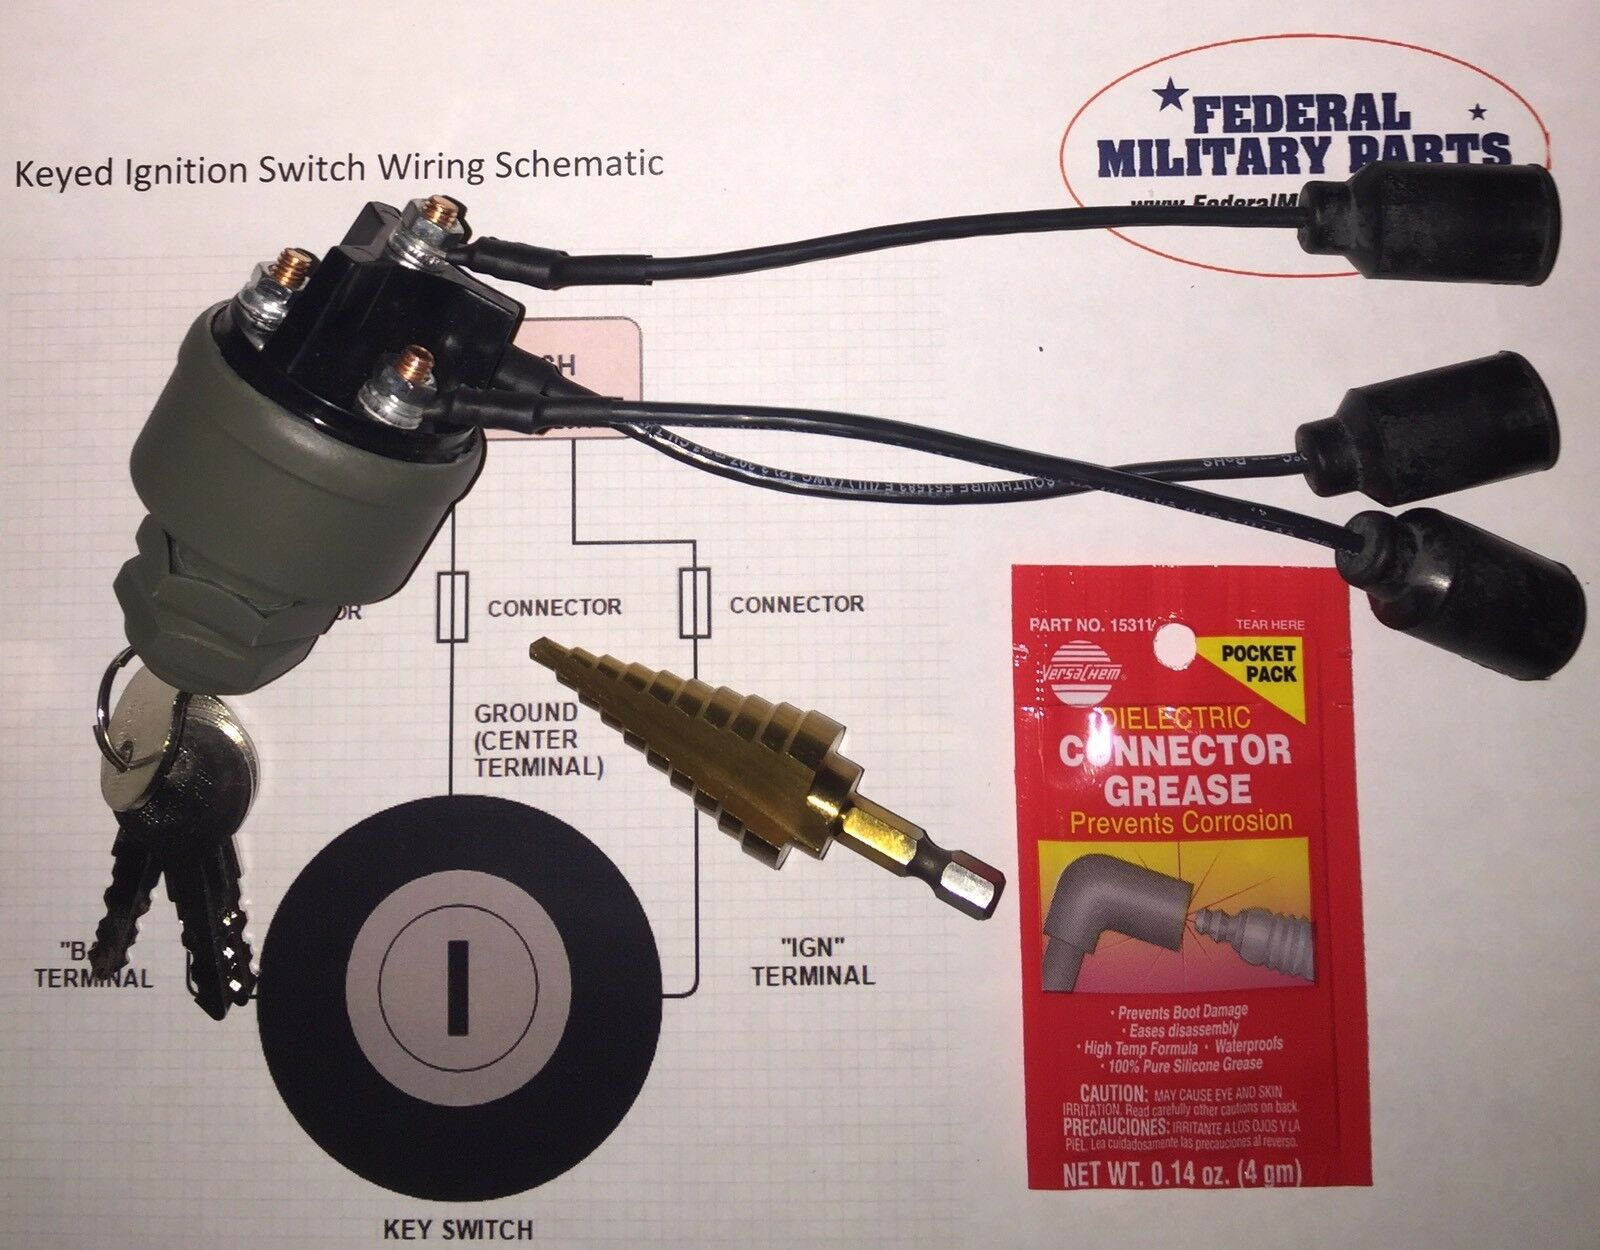 Install Kit Grn Original Humvee Tm Keyed Ignition Switch M998 Hmmwv Wiring Schematic 1 Of 10free Shipping